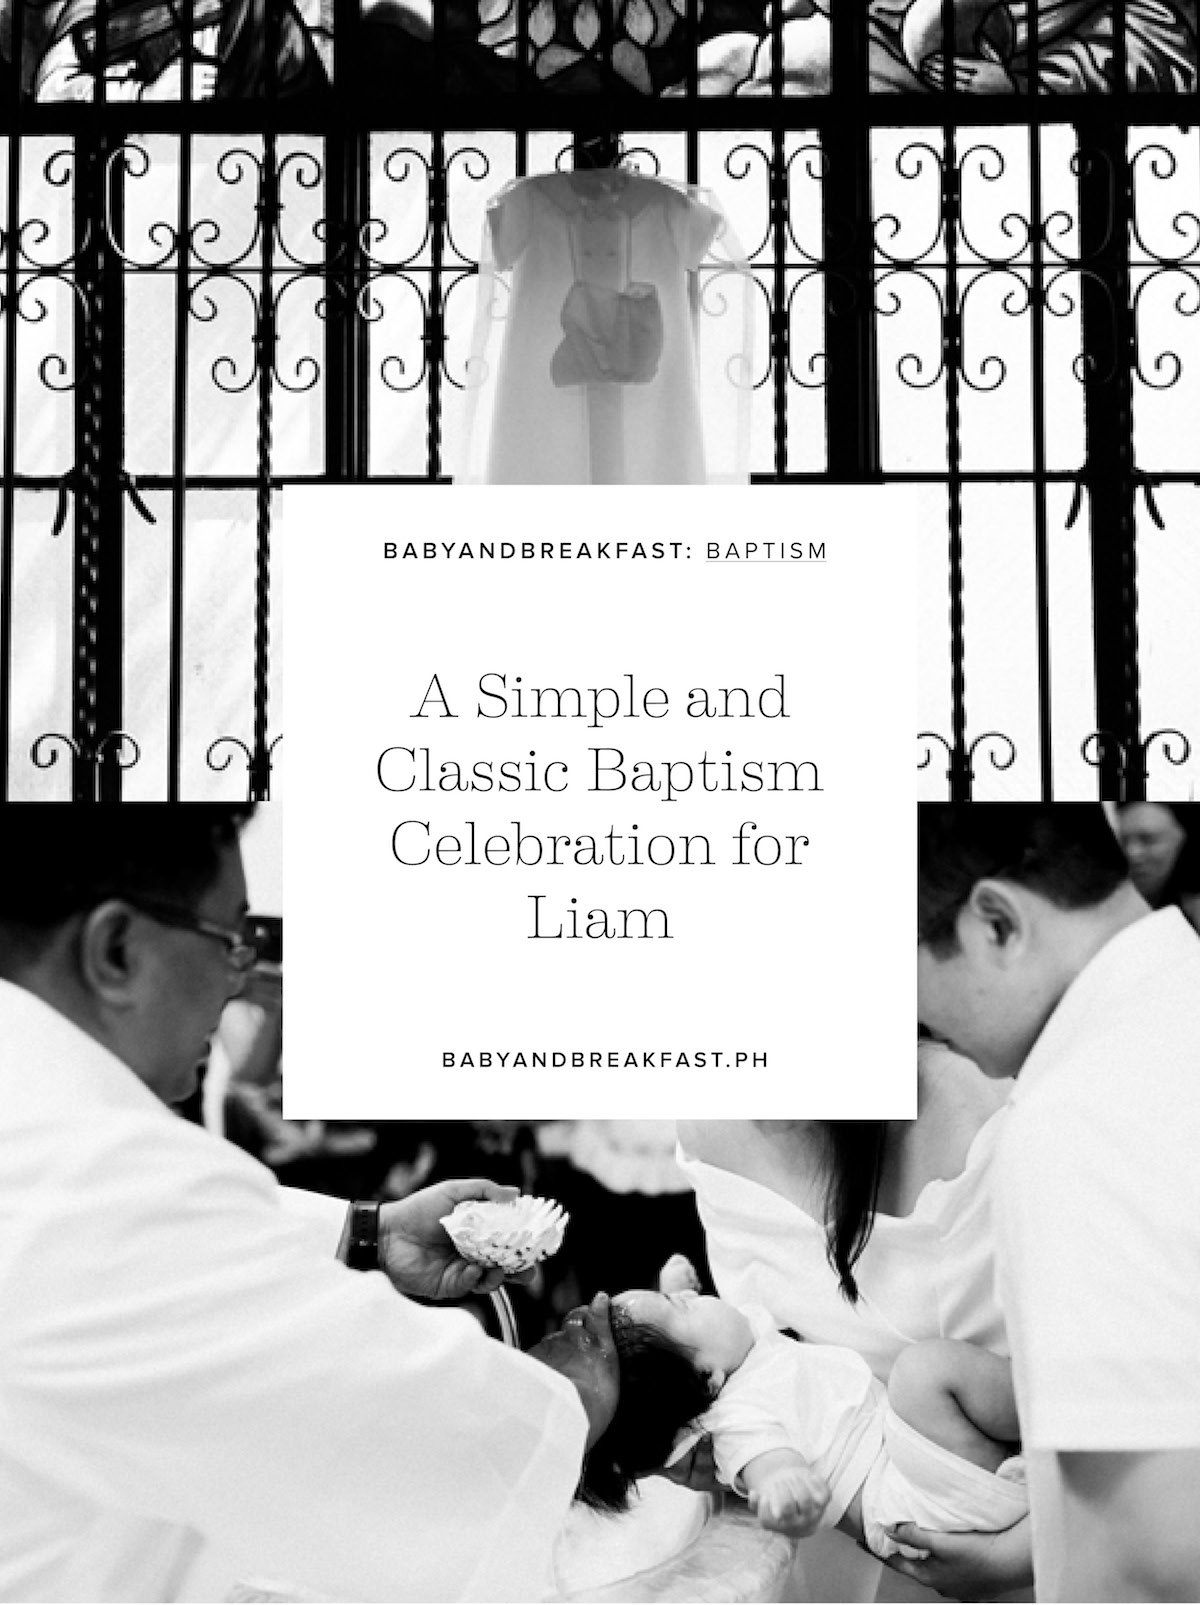 Baby and Breakfast: Boy Parties A Simple and Classic Baptism Celebration for Liam